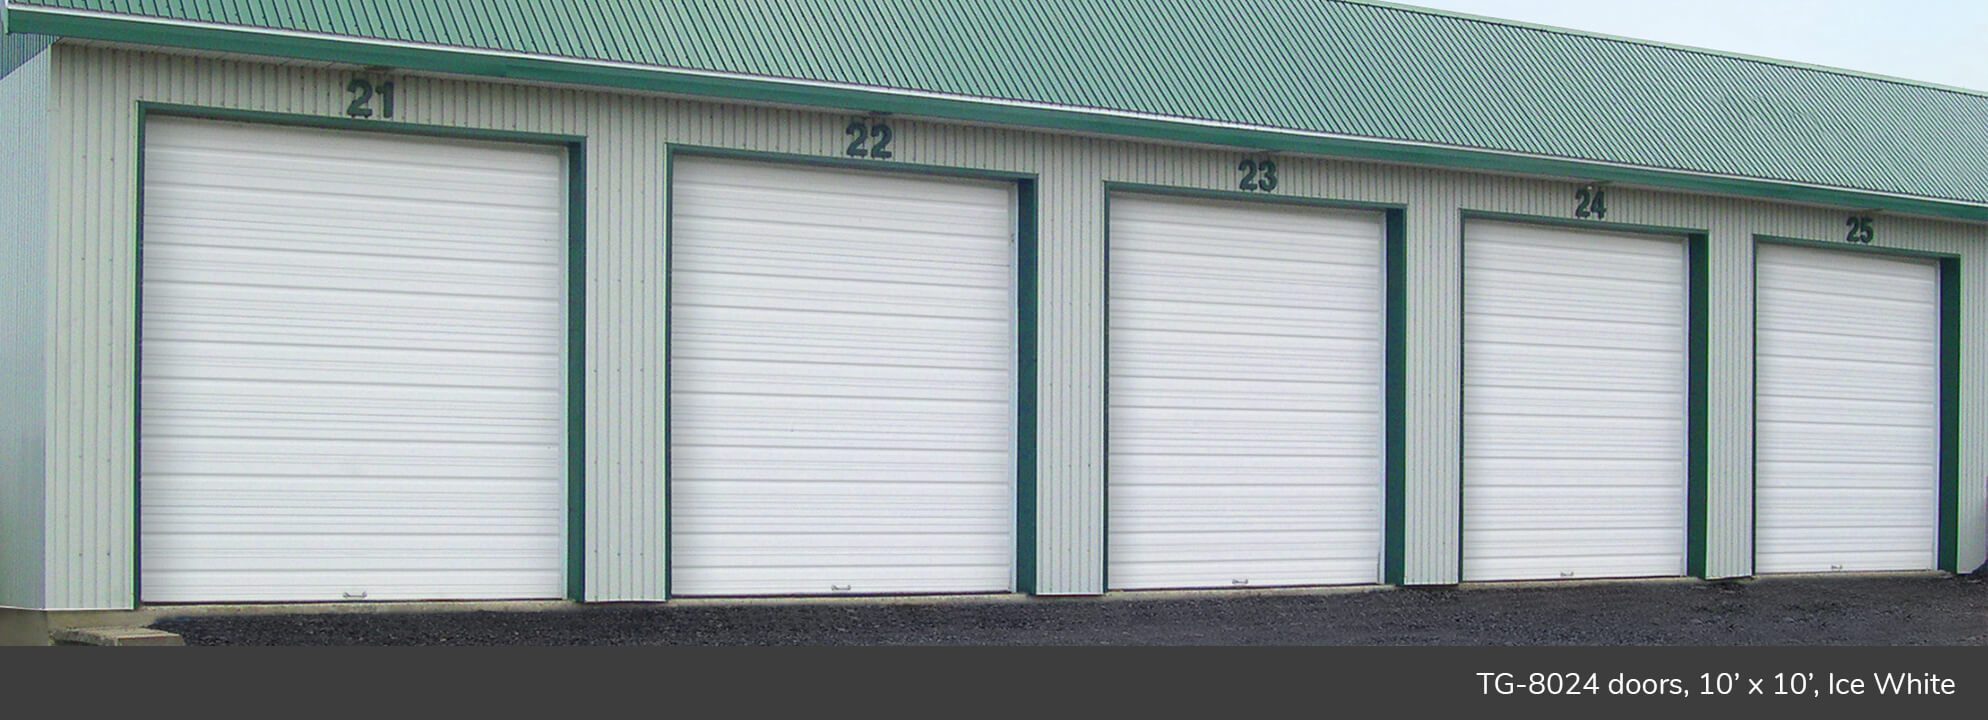 TG‑8024 doors, 10' x 10', Ice White